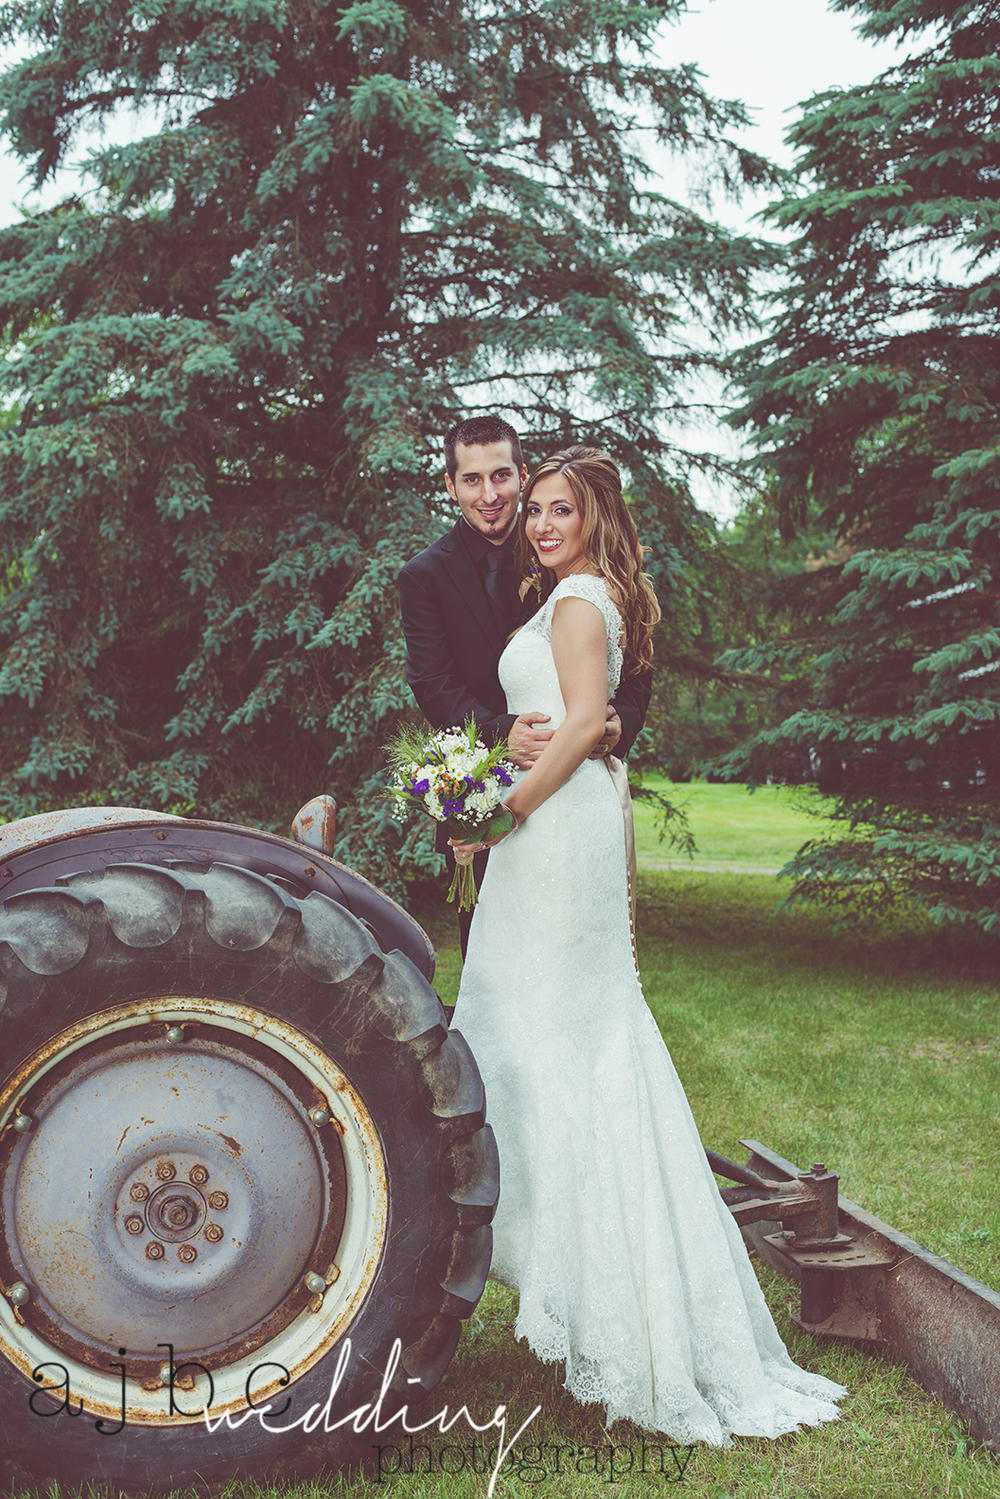 ajbcphotography-port-huron-michigan-wedding-photographer-outdoors-summer-wedding-country-wedding-wadhams-michigan-bride-vintage-wedding-tractor.jpg